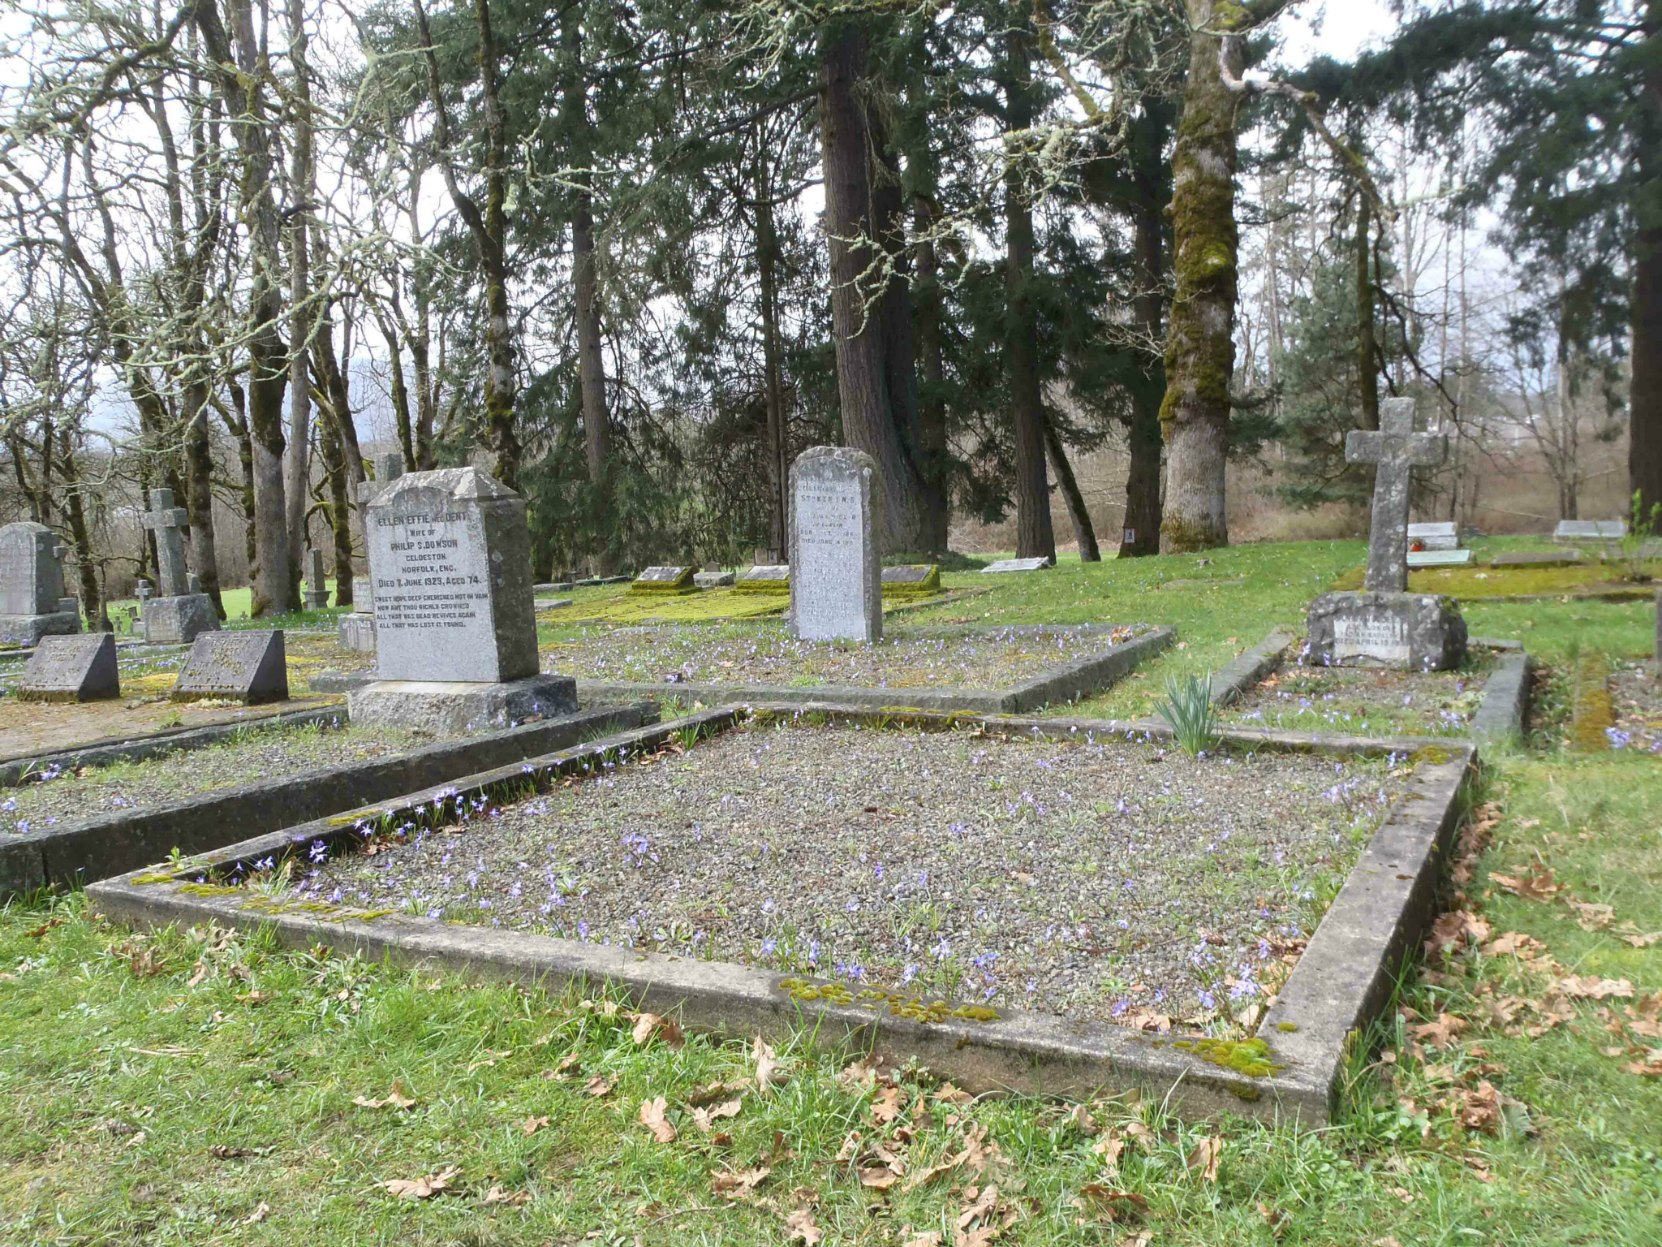 Richard Guy Mellin grave, St. Peter's Quamichan Anglican cemetery, North Cowichan, B.C.